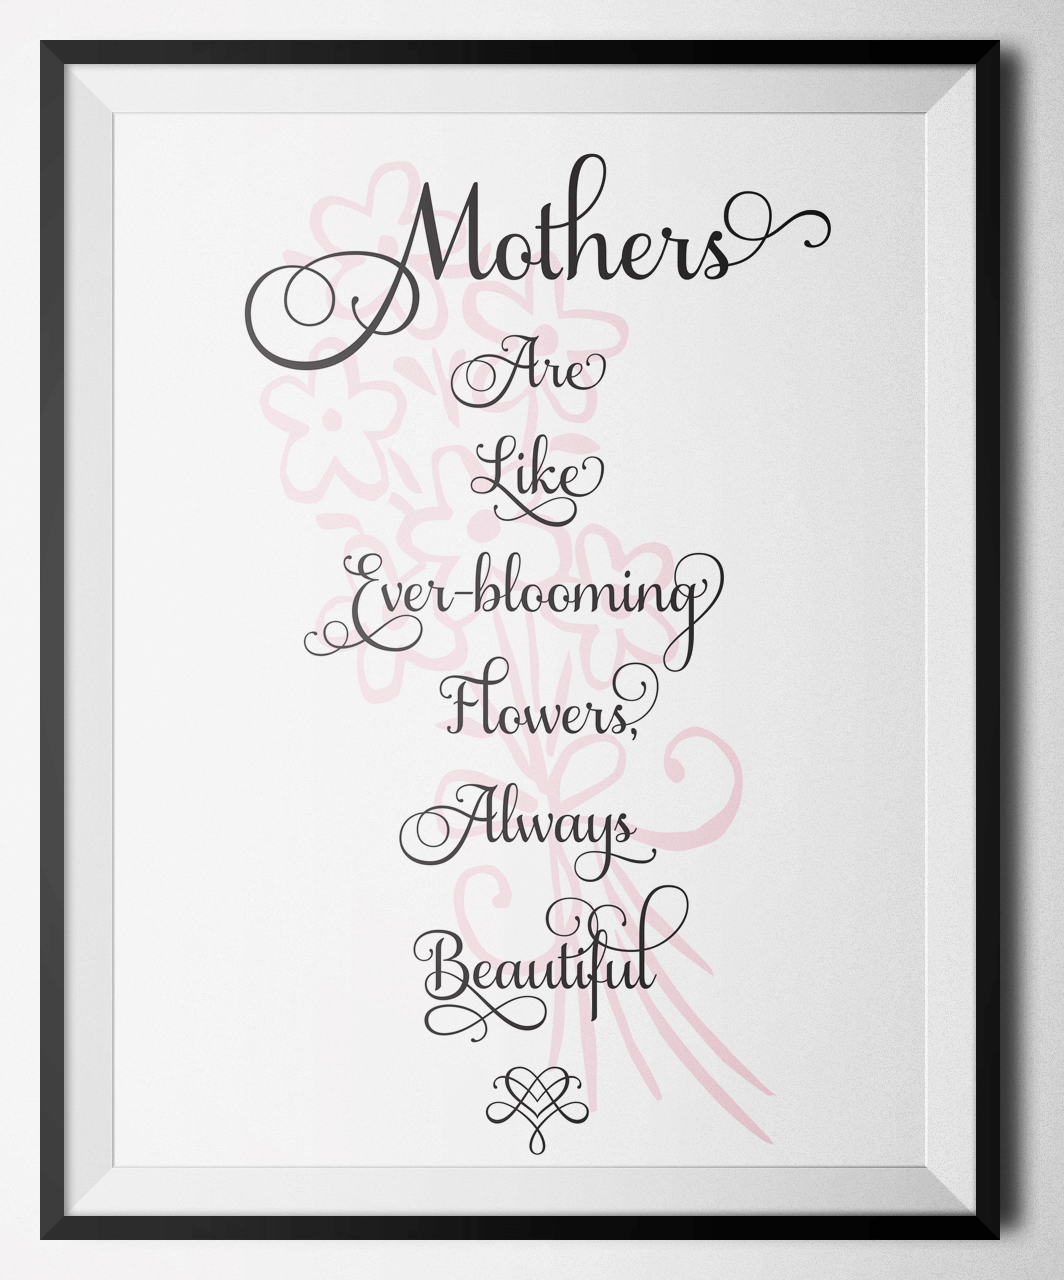 ... Tribute and Birthday Message to My Mother + Printable Mother'a Day Art